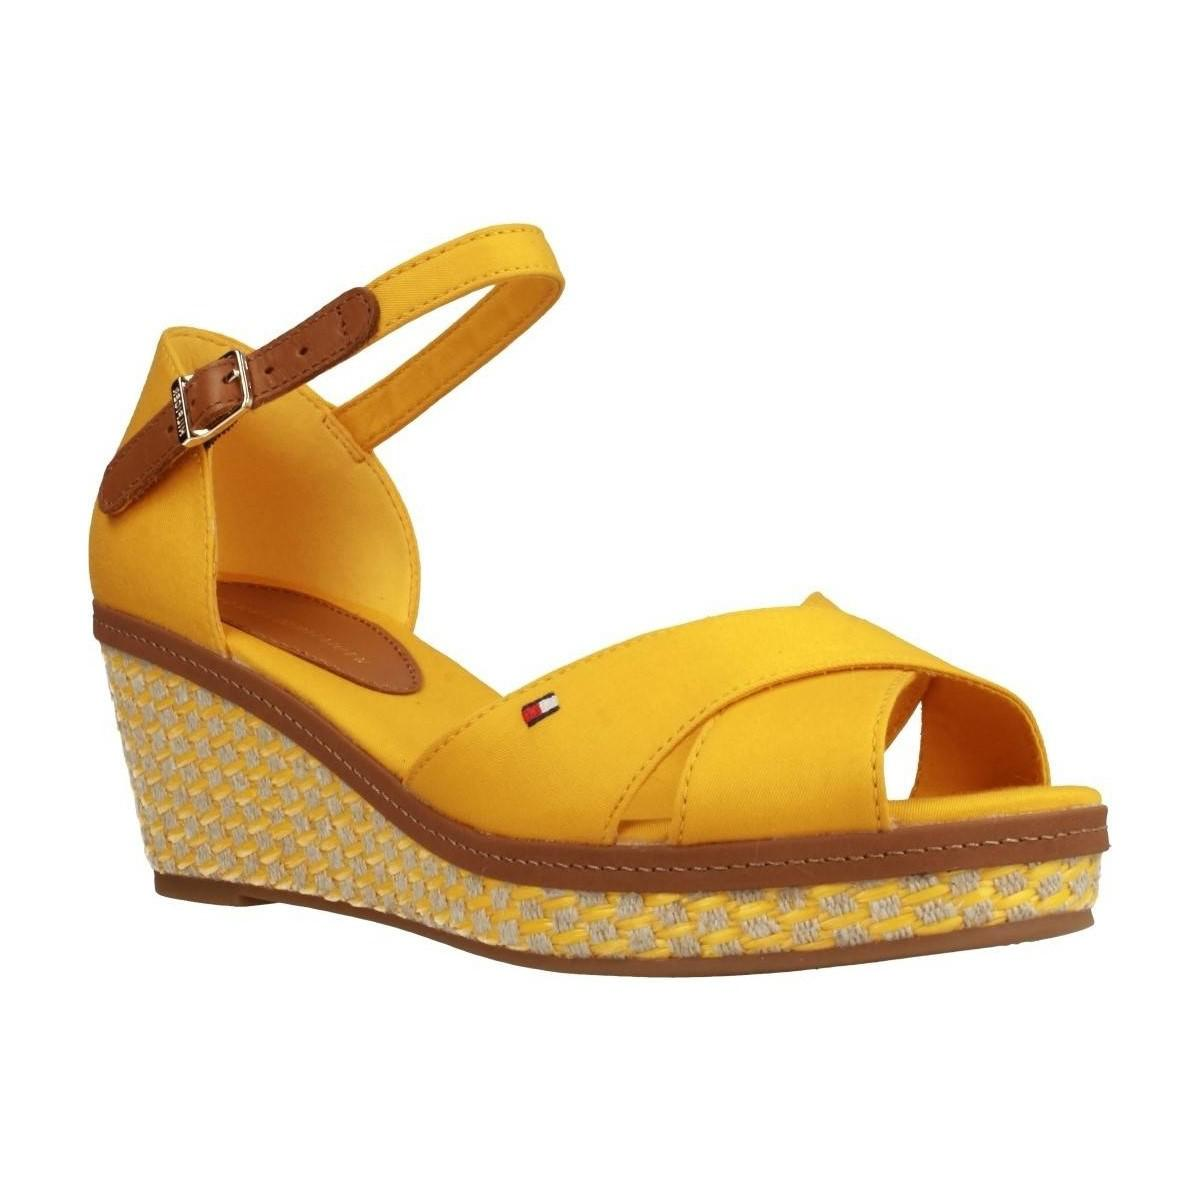 bbed7546db267a Tommy Hilfiger Fw0fw02648 Women s Sandals In Yellow in Yellow - Lyst